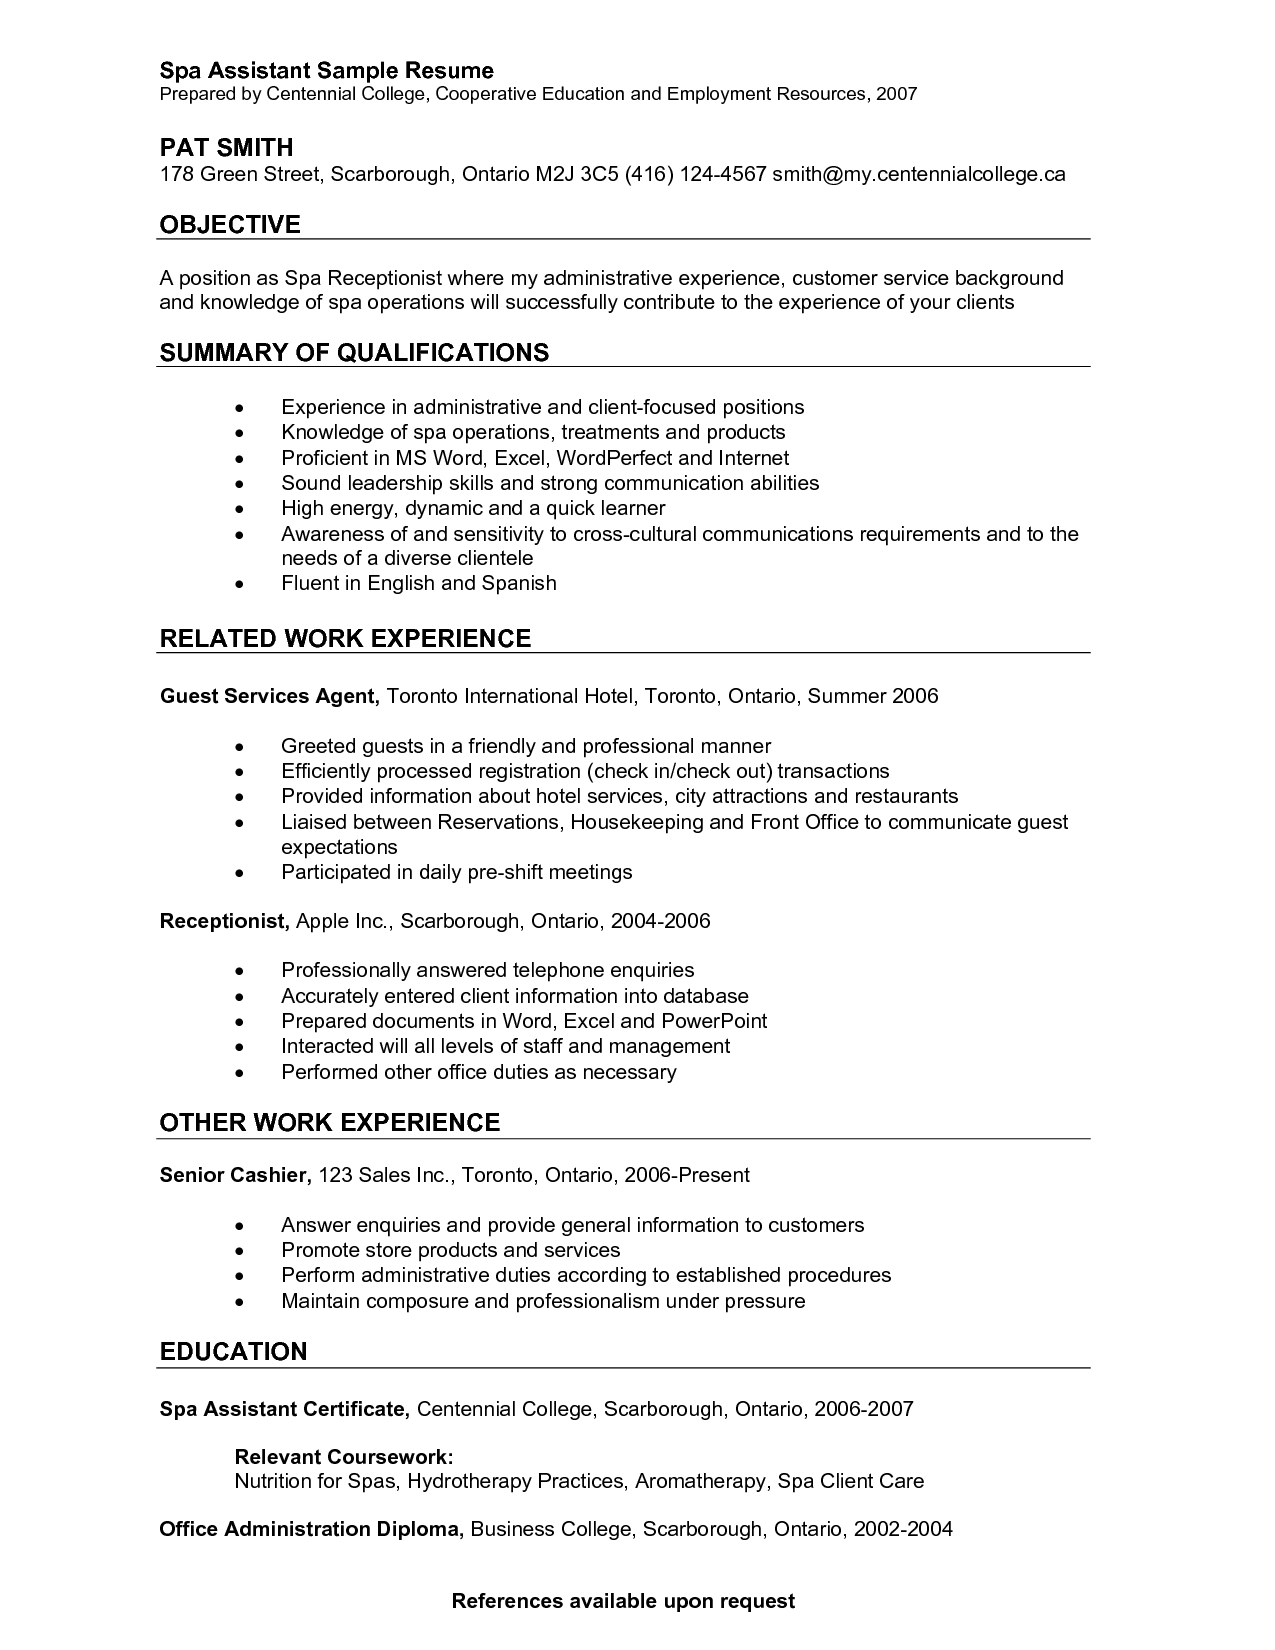 Office Assistant Resume Templates Custom Medical Receptionist Resume Objective Samples  Resume  Pinterest